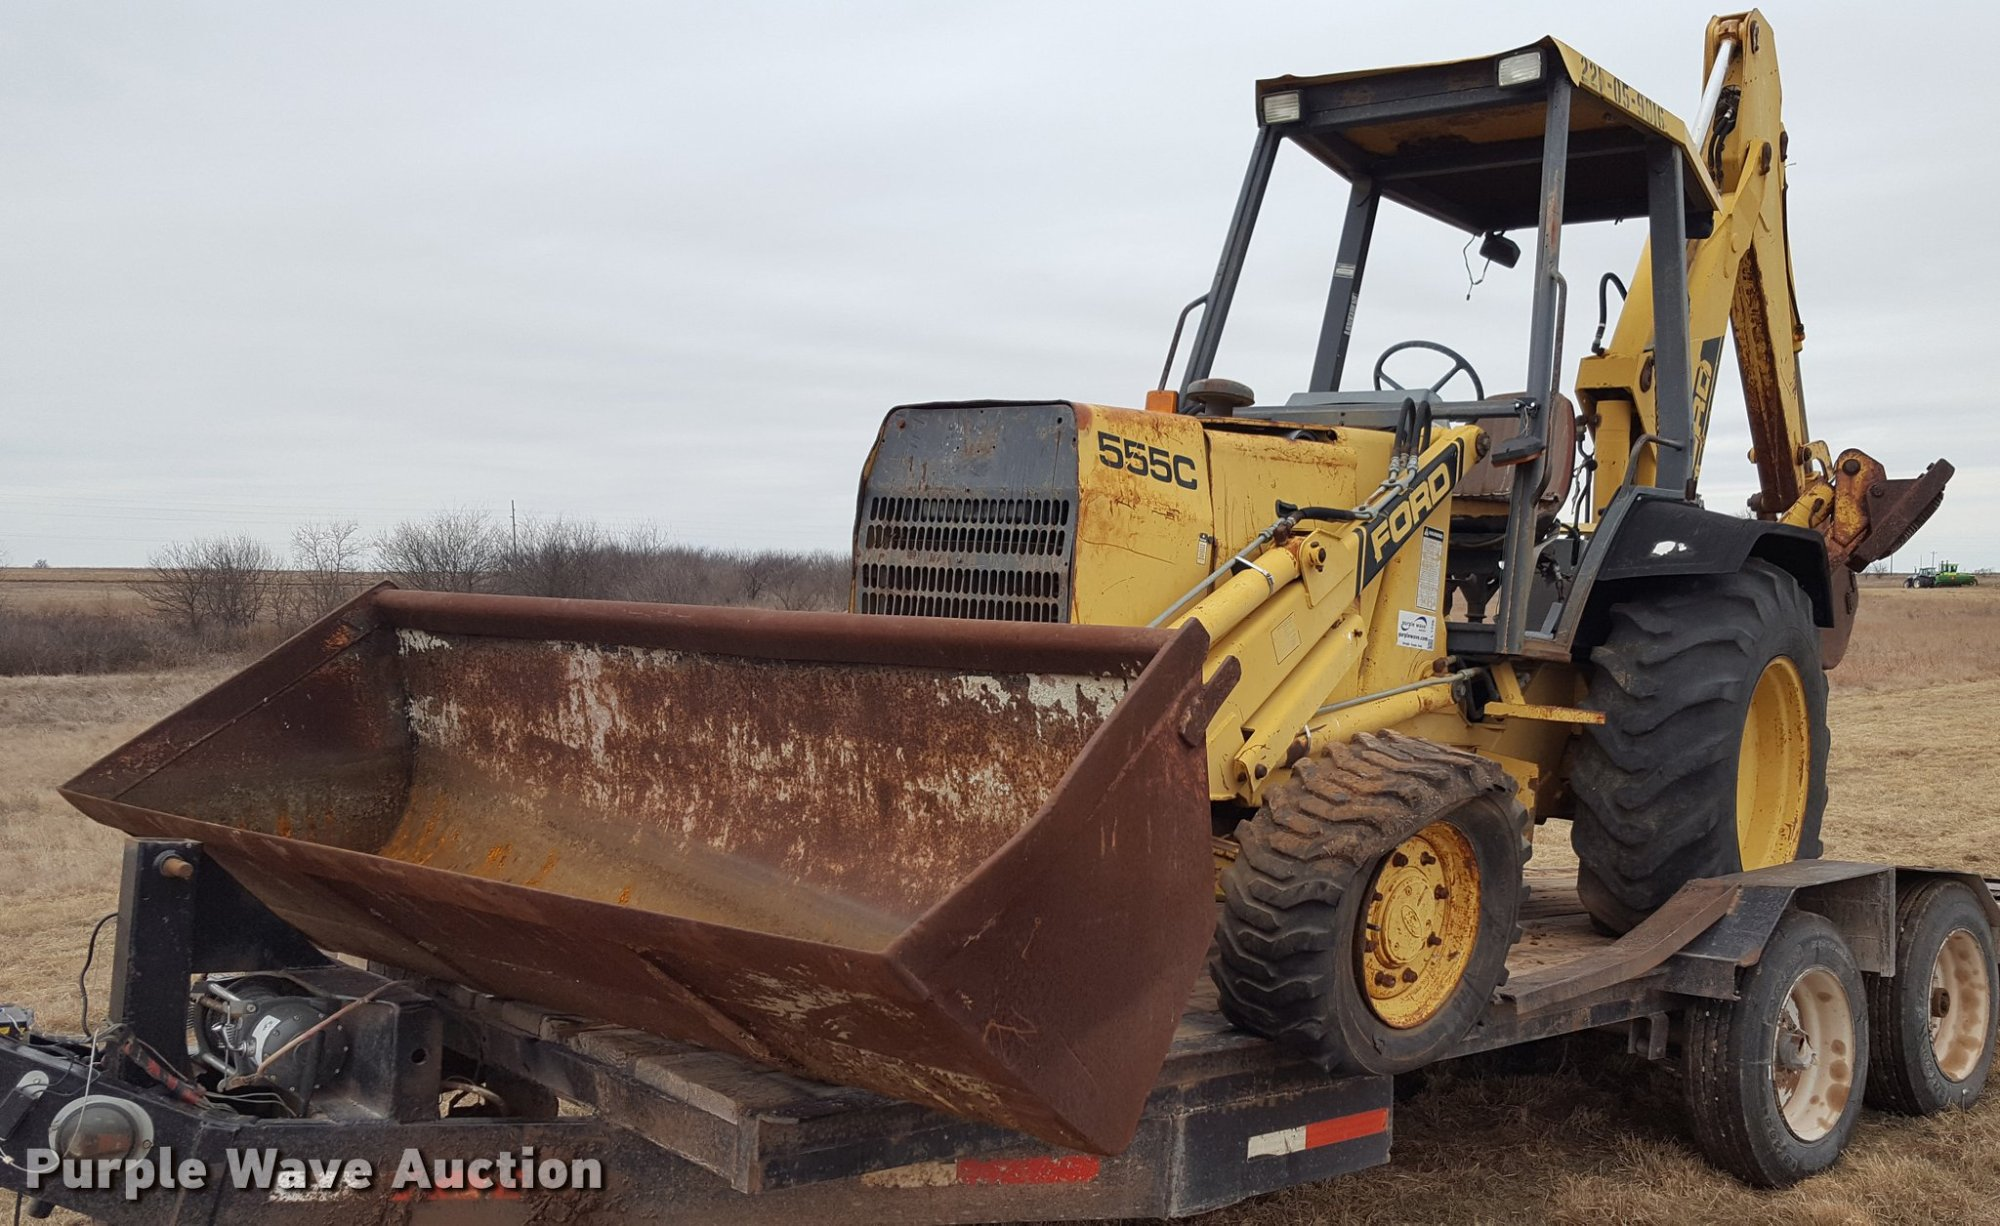 hight resolution of ford 555c backhoe item l1729 sold february 2 constructi ford 555 backhoe buckets l1729 image